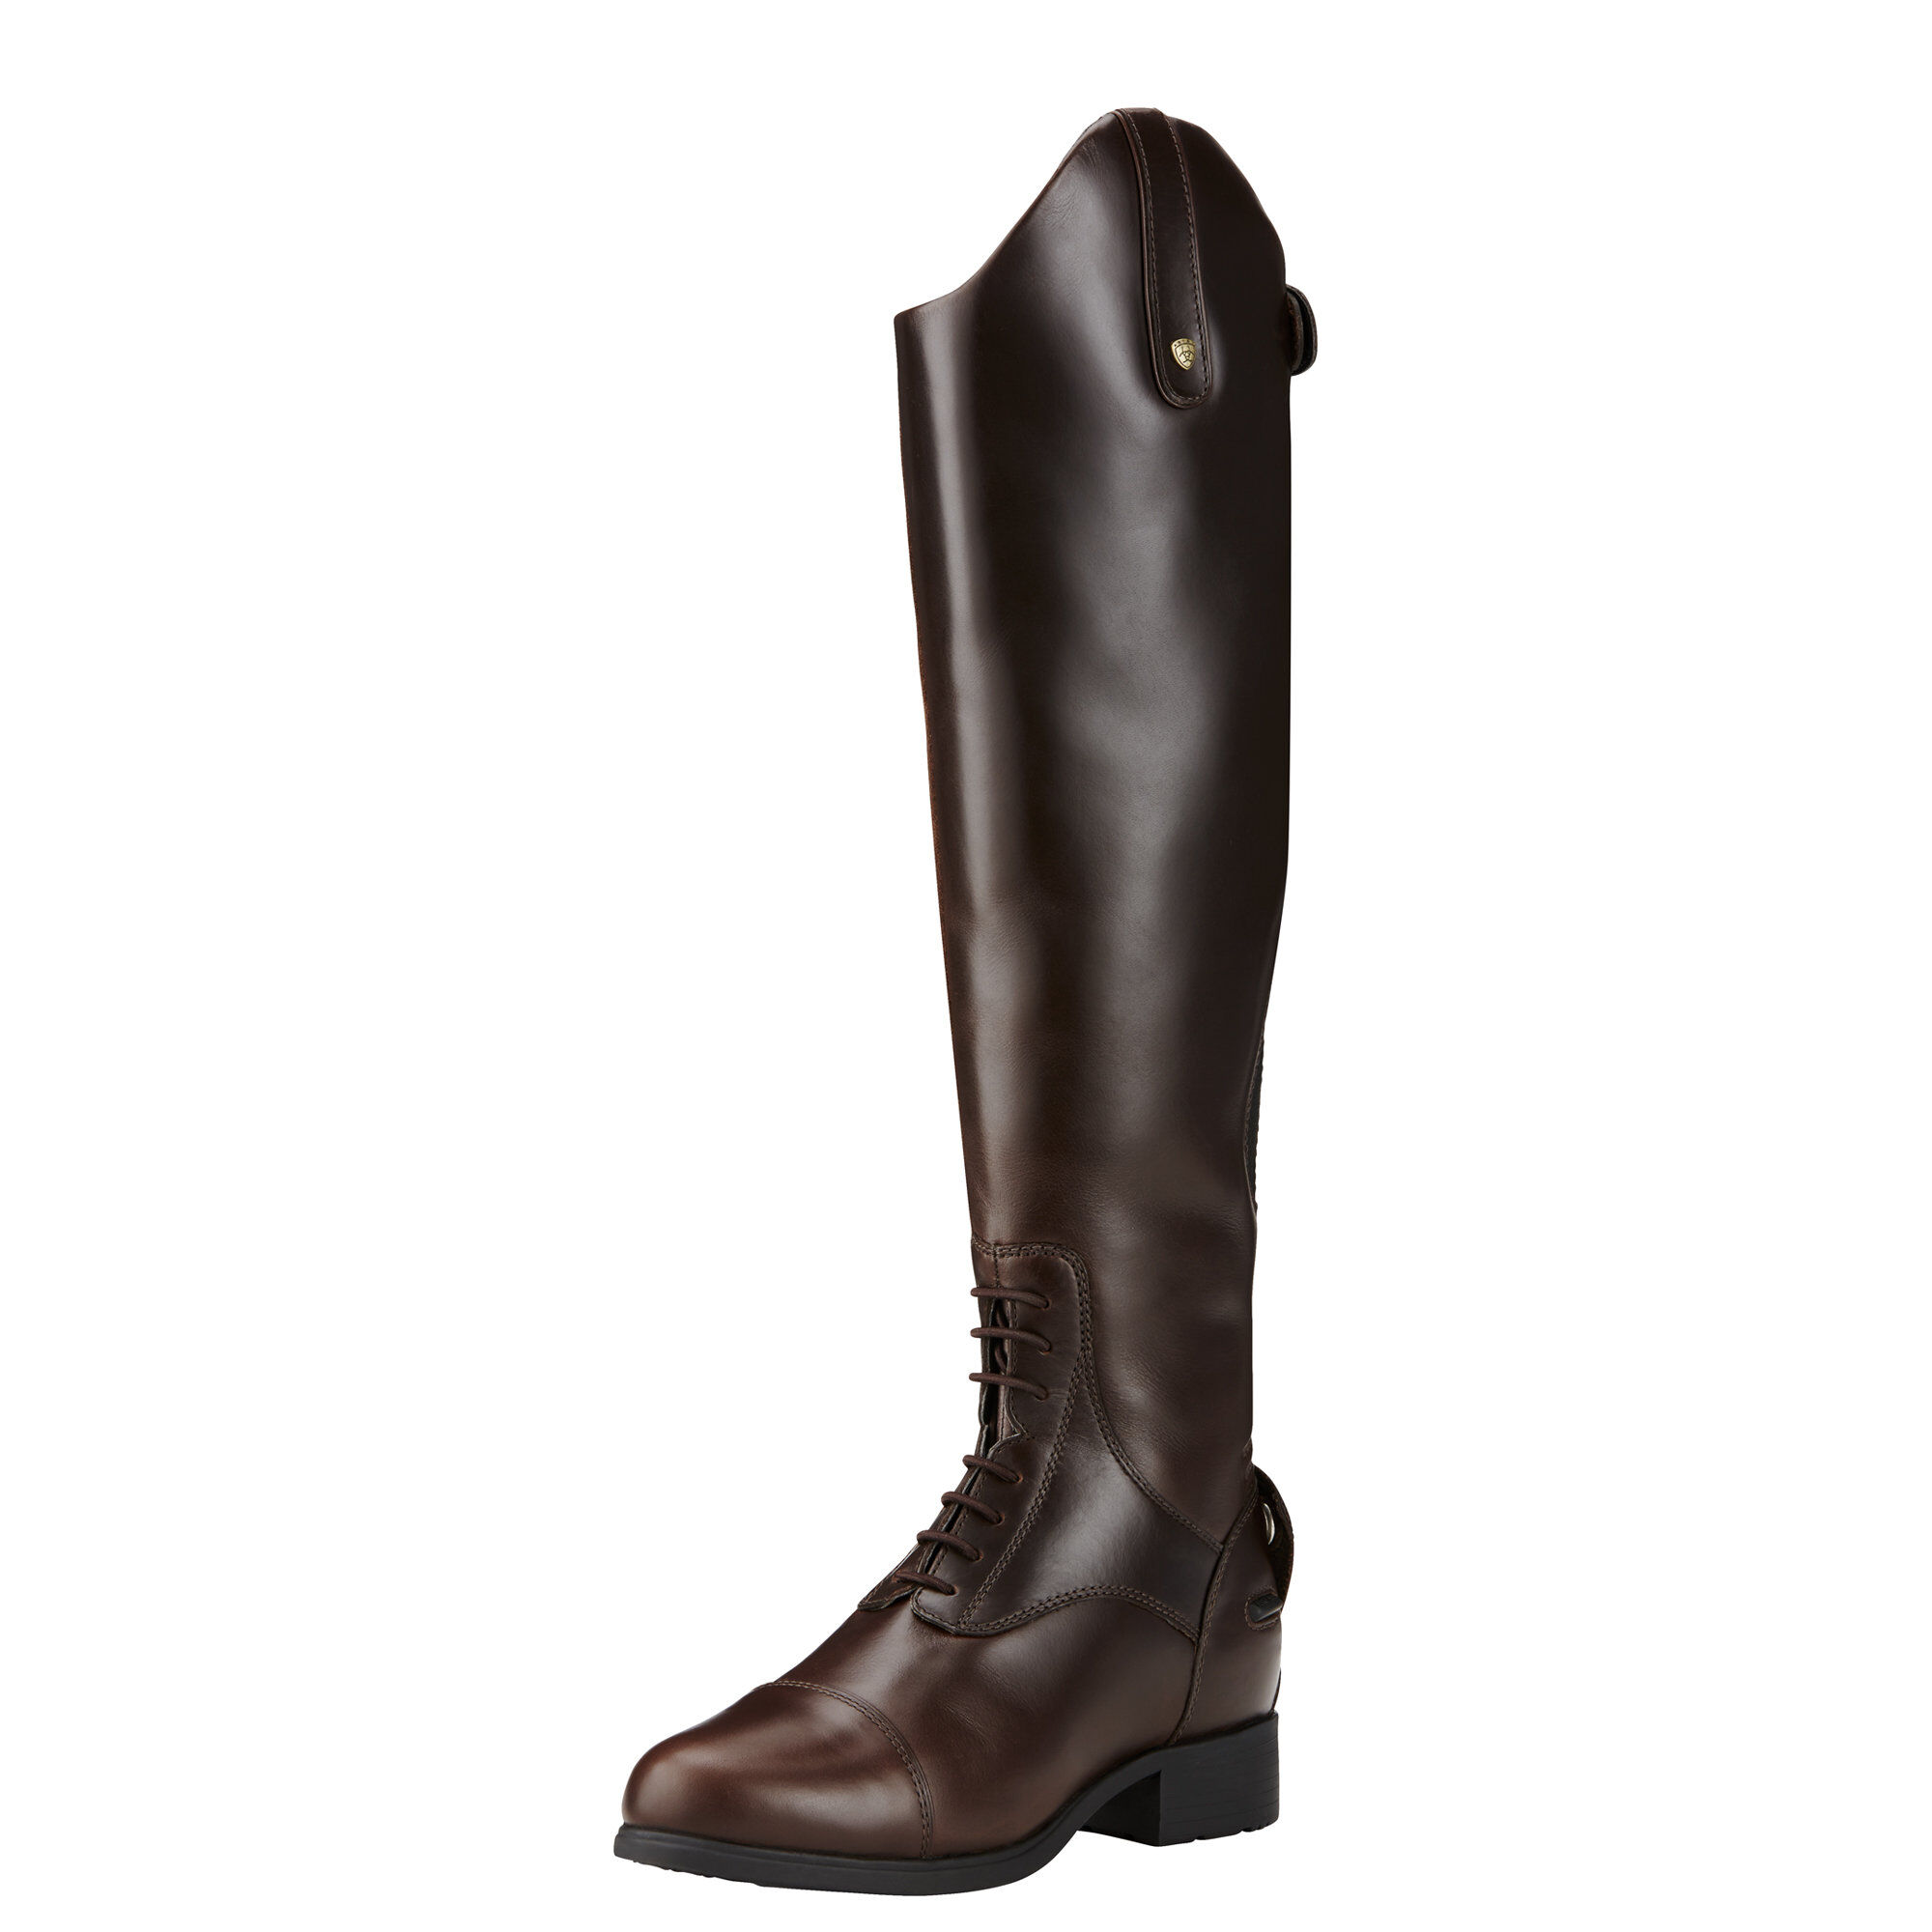 Ariat Damen winterreitstiefel Bromont Pro Tall H2O Insulated, waxed chocolate